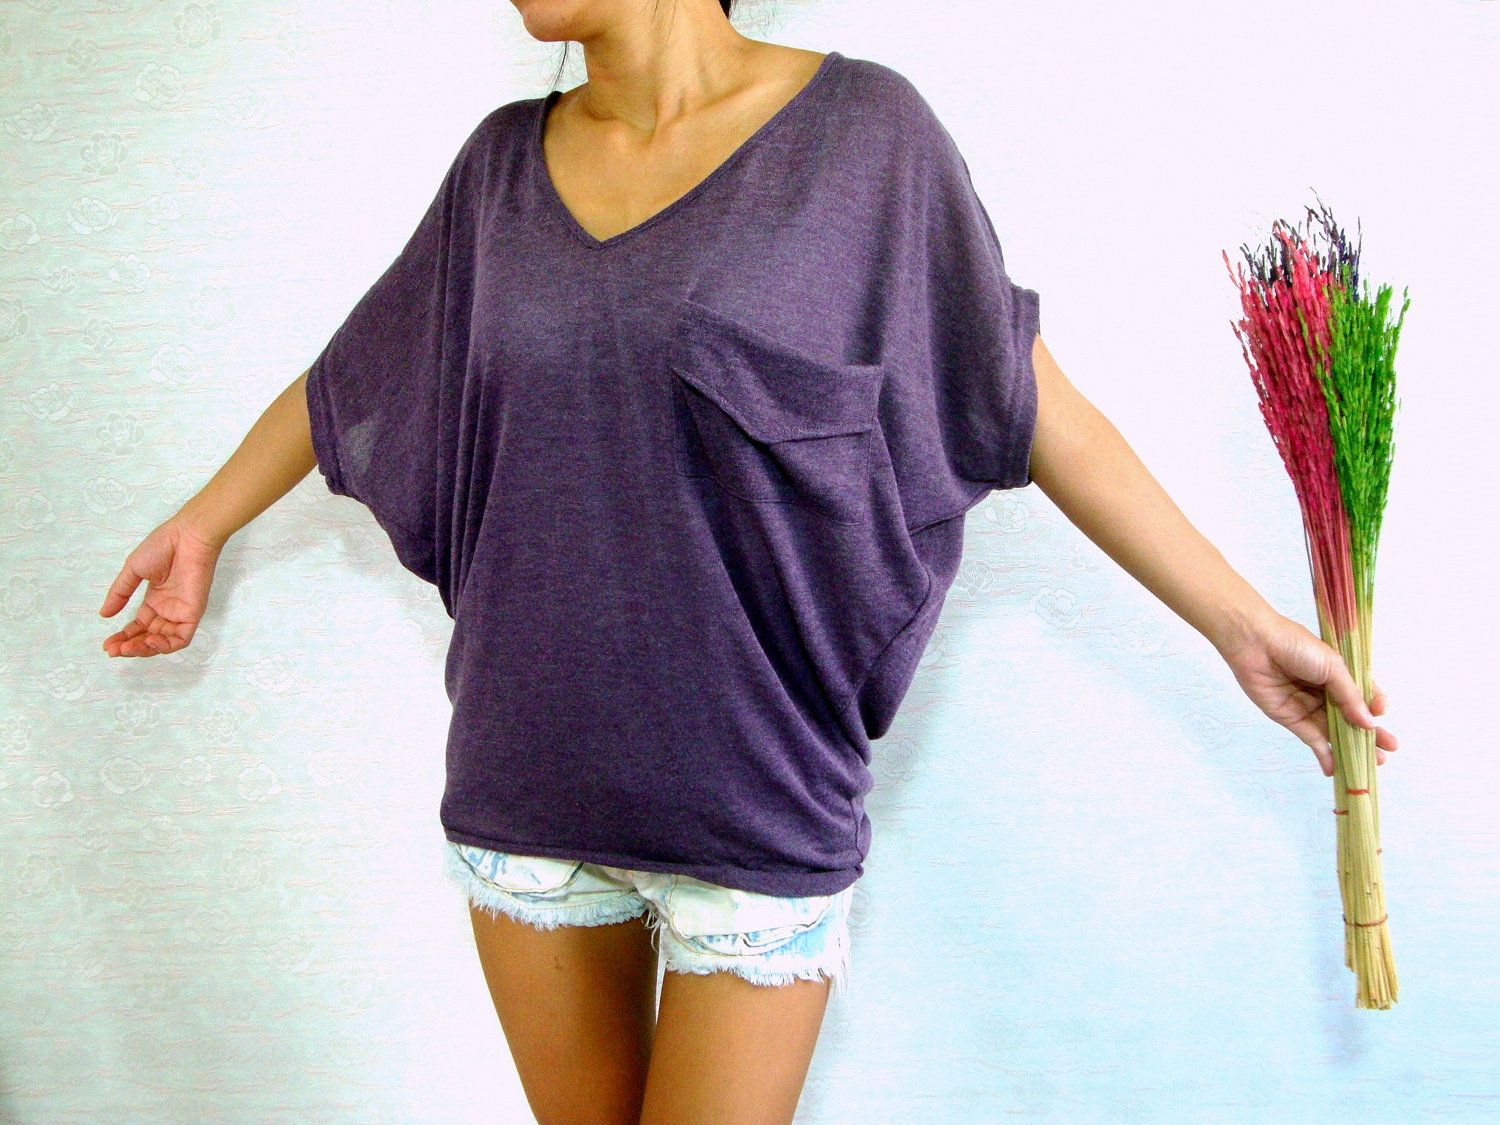 17 Best ideas about Purple Women's Tops on Pinterest | Purple ...